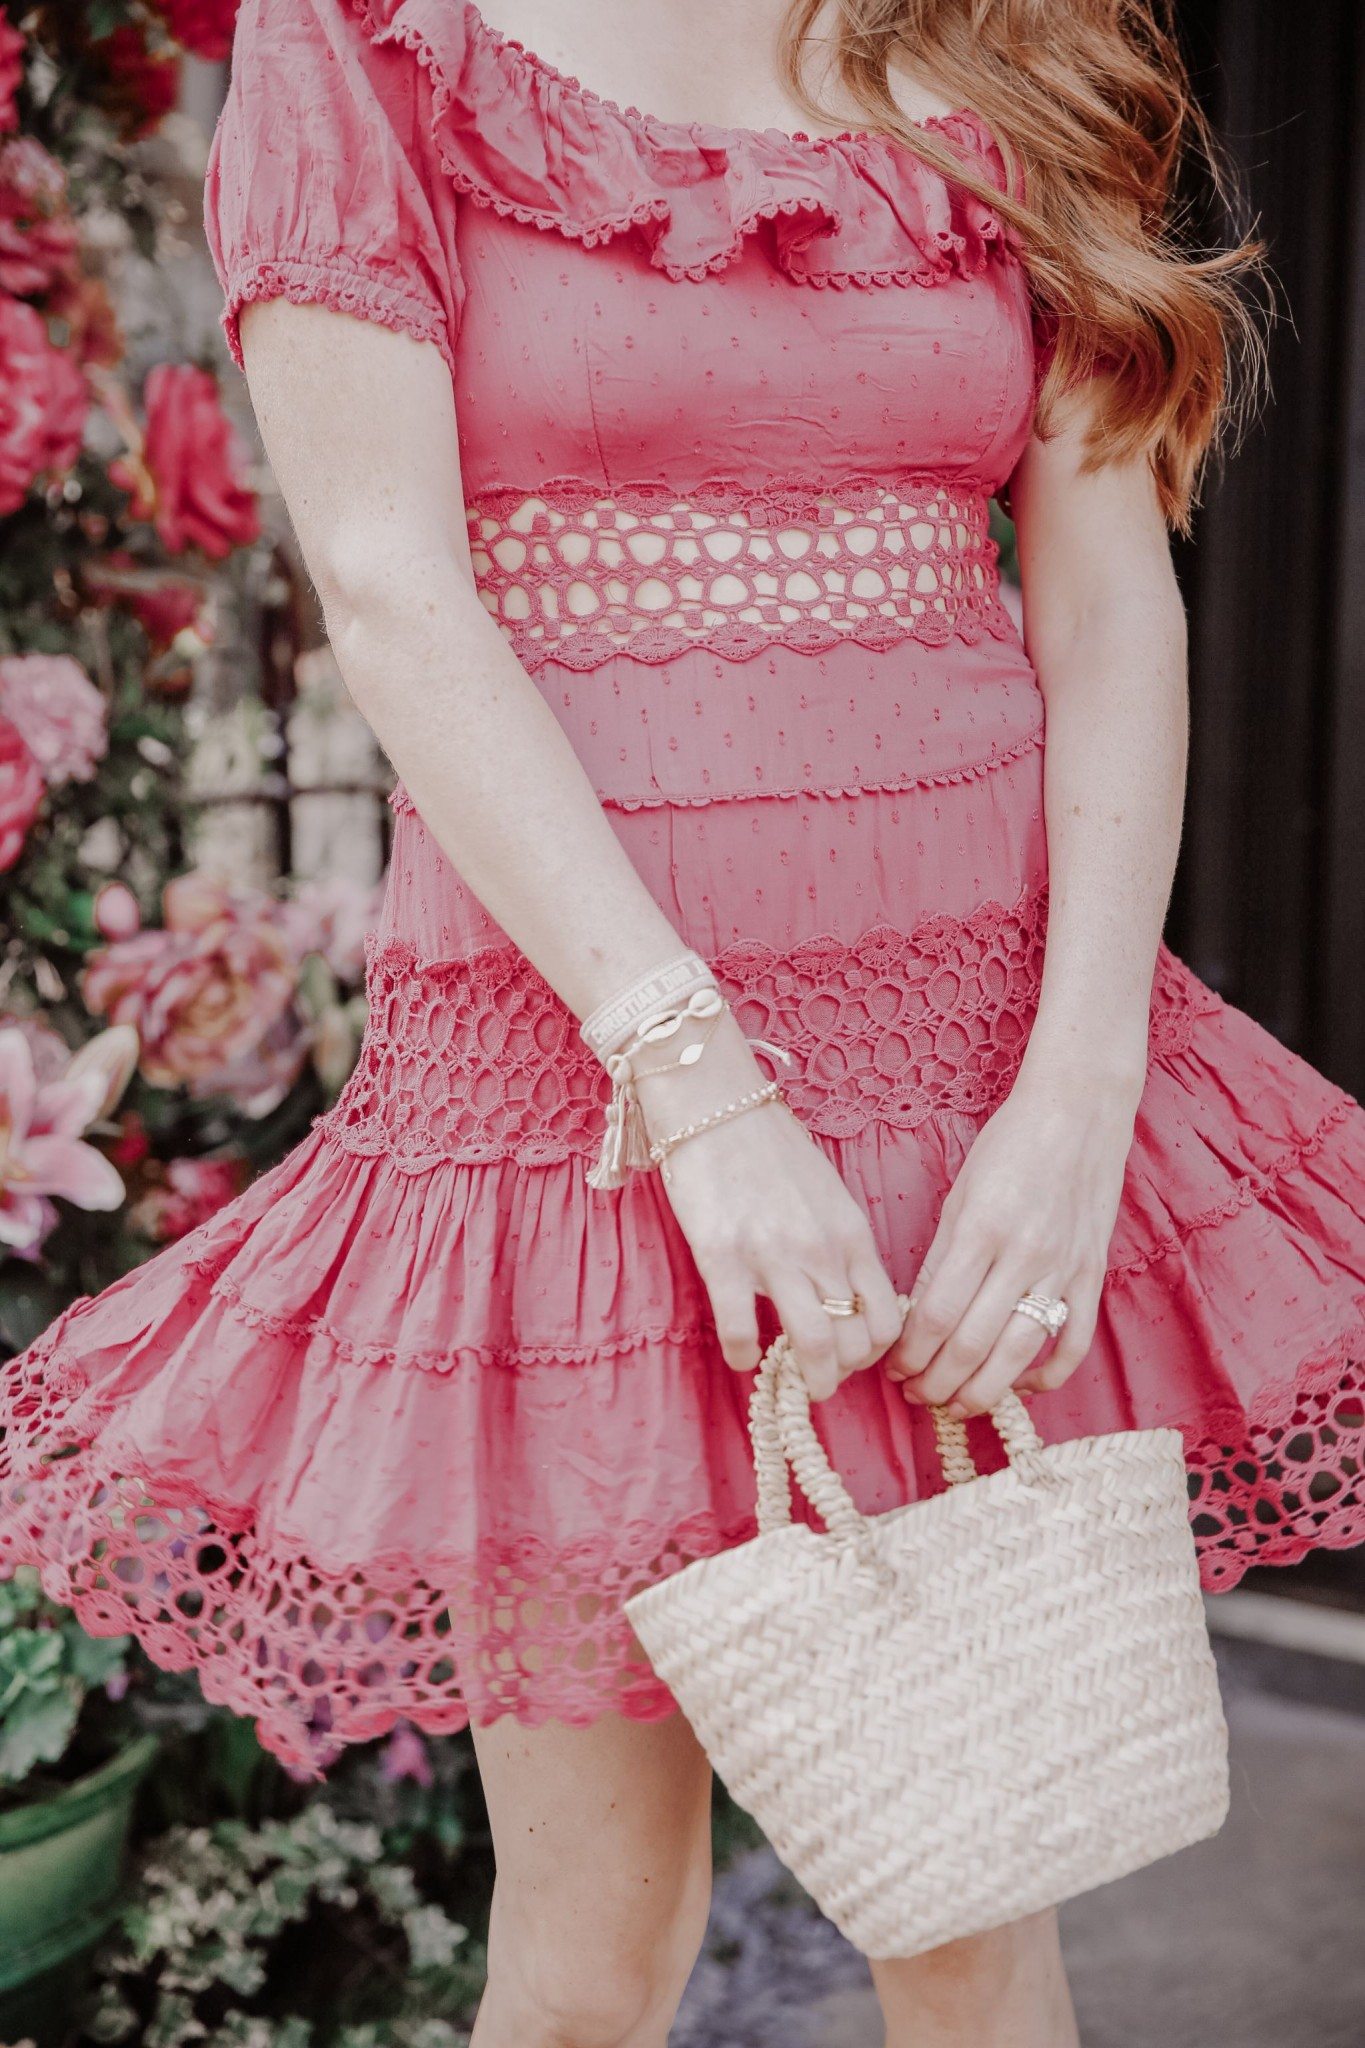 Lifestyle blogger Mollie Moore shares summer wedding outfit ideas | What to Wear for a Summer Wedding by popular London fashion blogger Mollie Moore: image of woman standing under a floral archway and wearing Orelia gold plated cowrie shell huggie hoop earrings, set of Christian Dior J'adior bracelets, Mango braided mini bag, and Shopbob Free People Cruel Intentions Mini Dress.